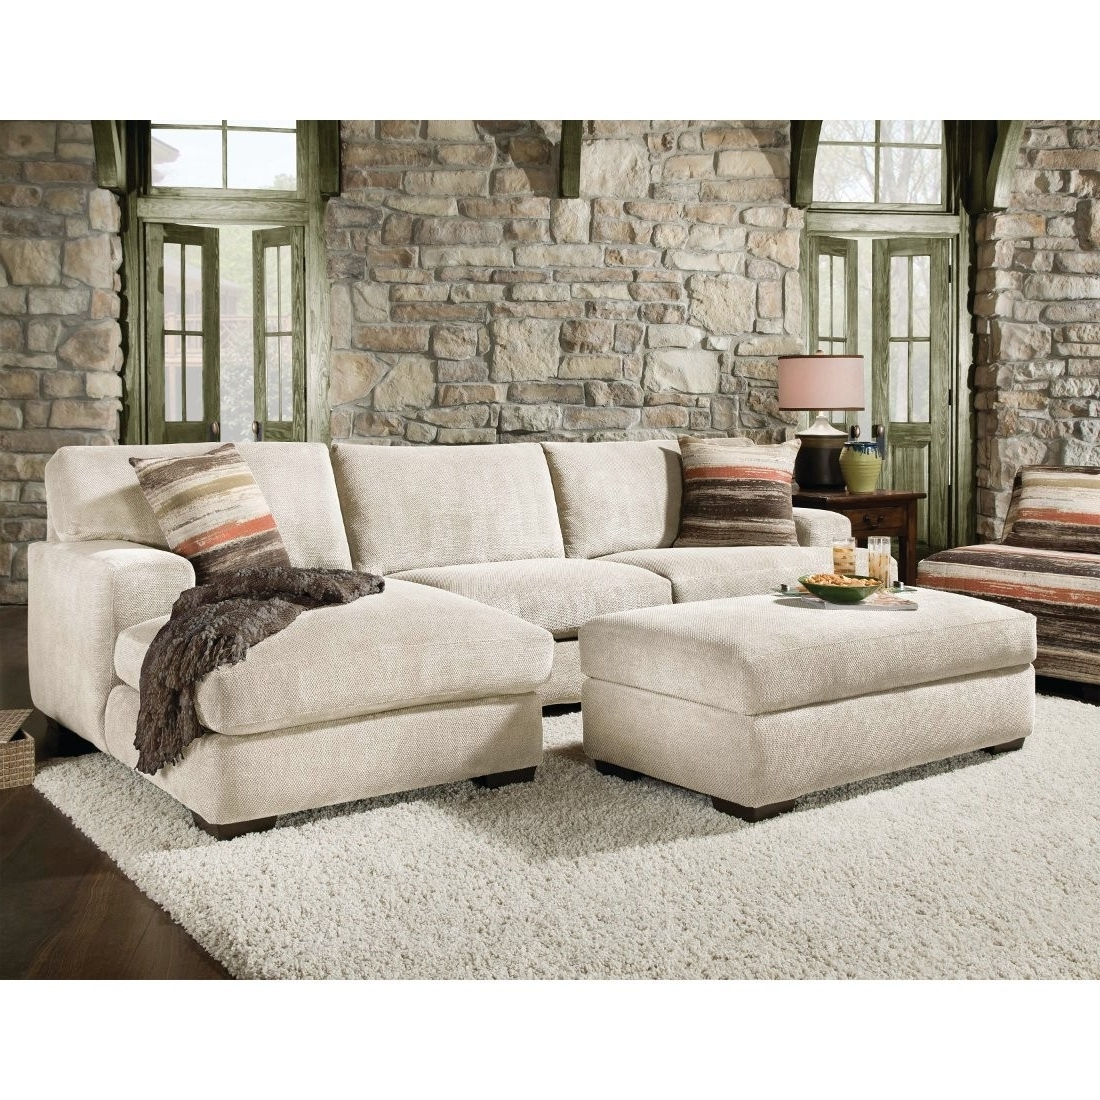 Corinthian Mead Sectional Sofa Piece (View 7 of 15)